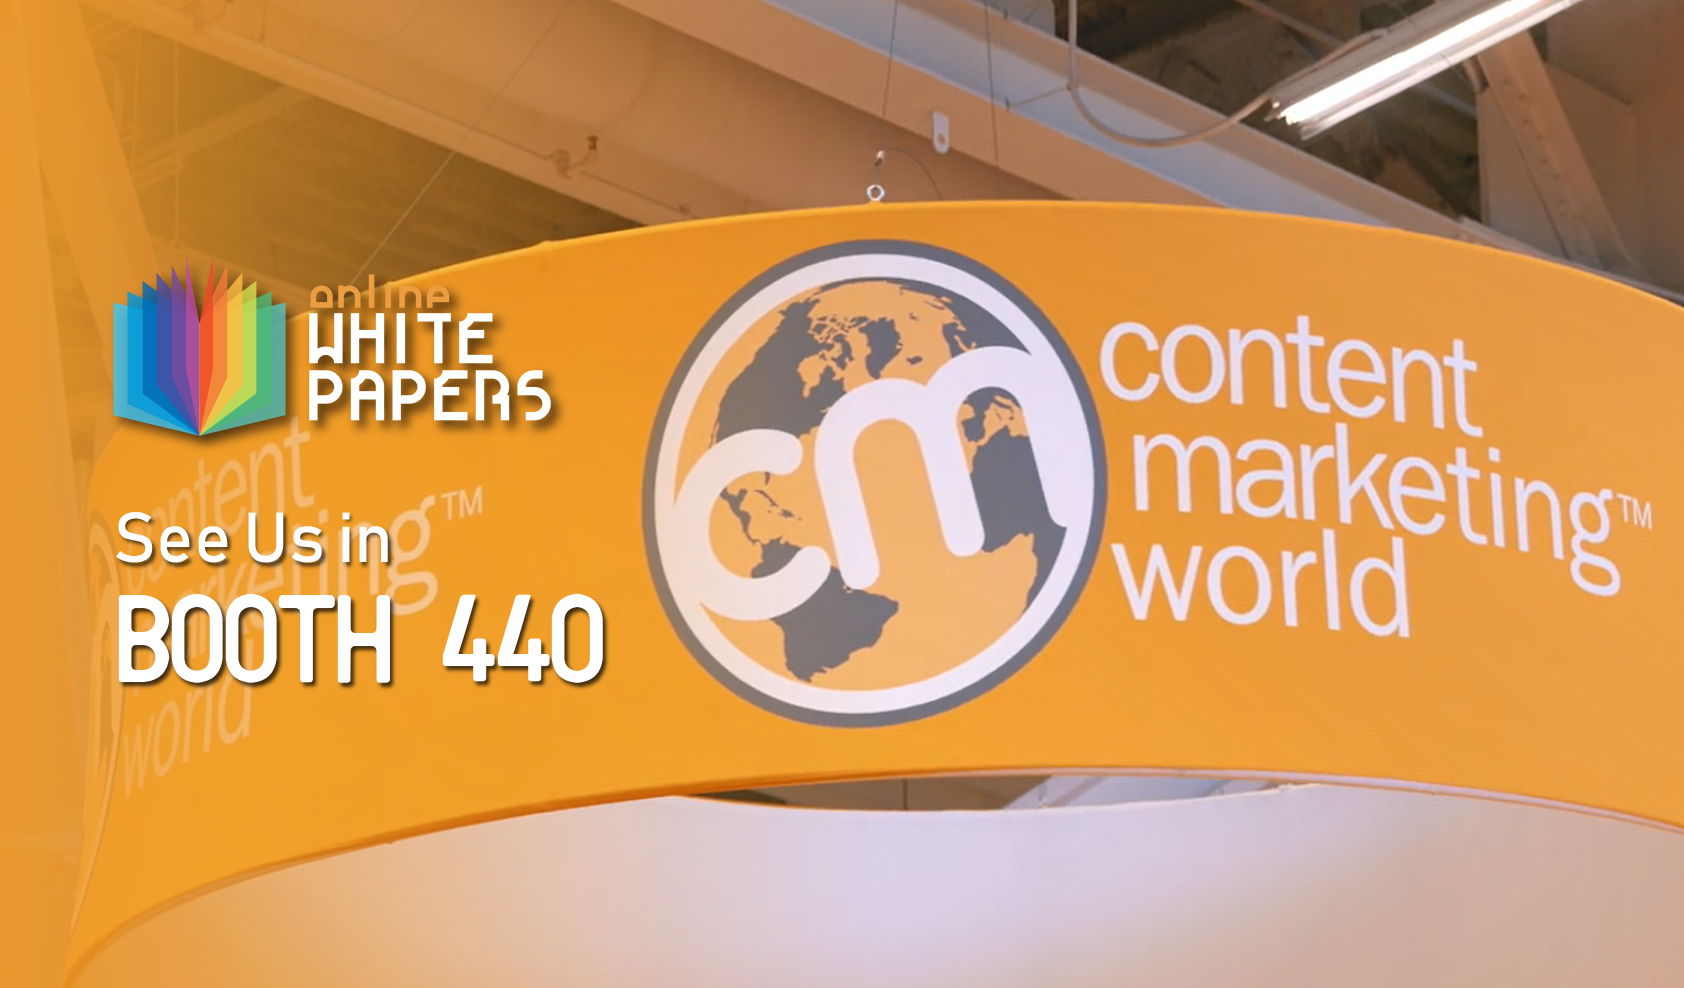 OnlineWhitepapers.com bringing the power of whitepapers to Content Marketing World